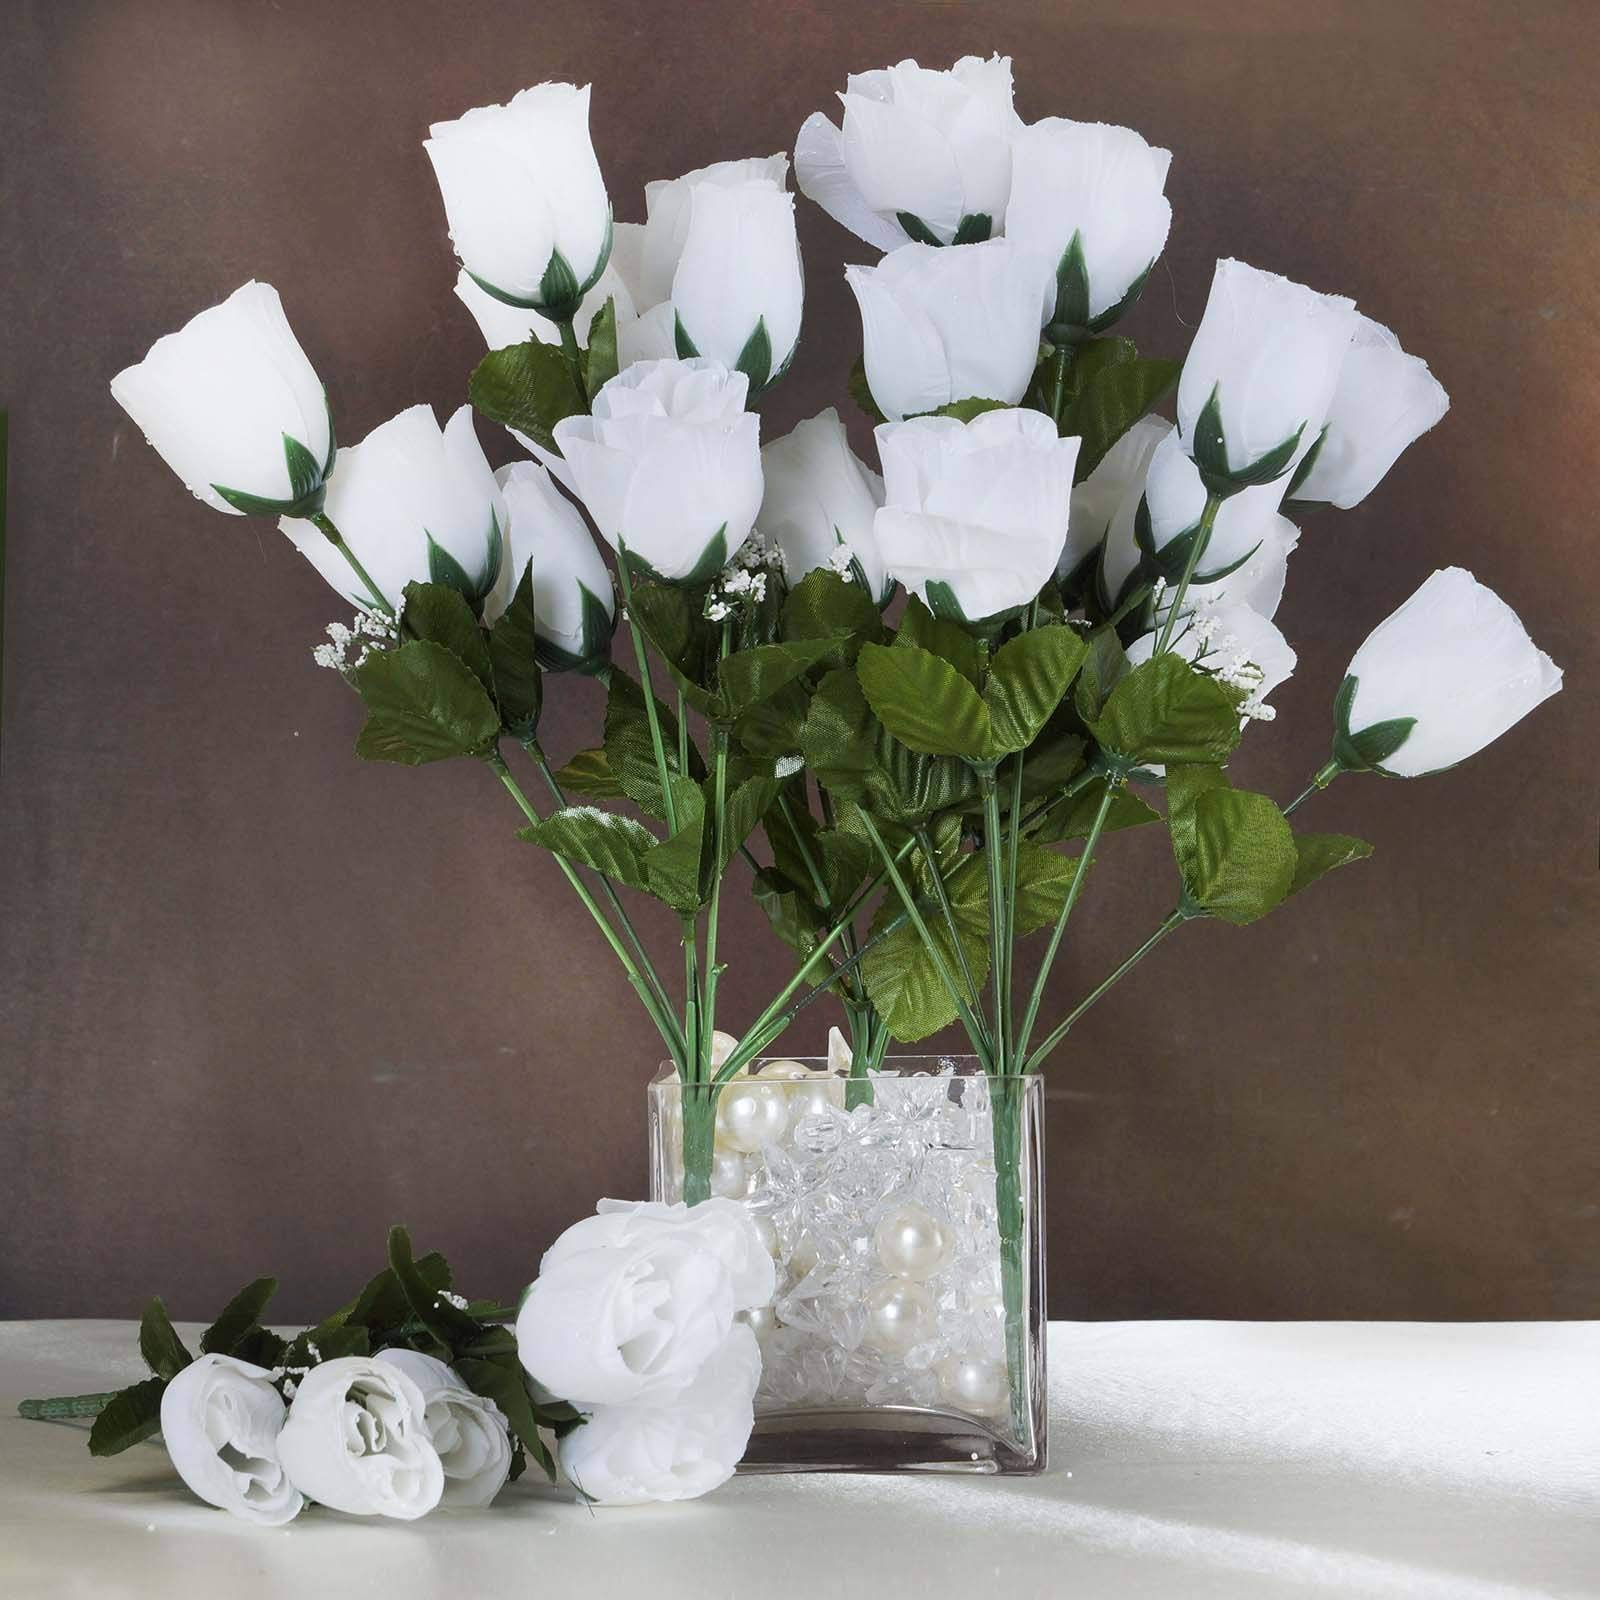 Efavormart-84-Artificial-Buds-Roses-for-DIY-Wedding-Bouquets-Centerpieces-Arrangements-Party-Home-Decoration-Supply-White